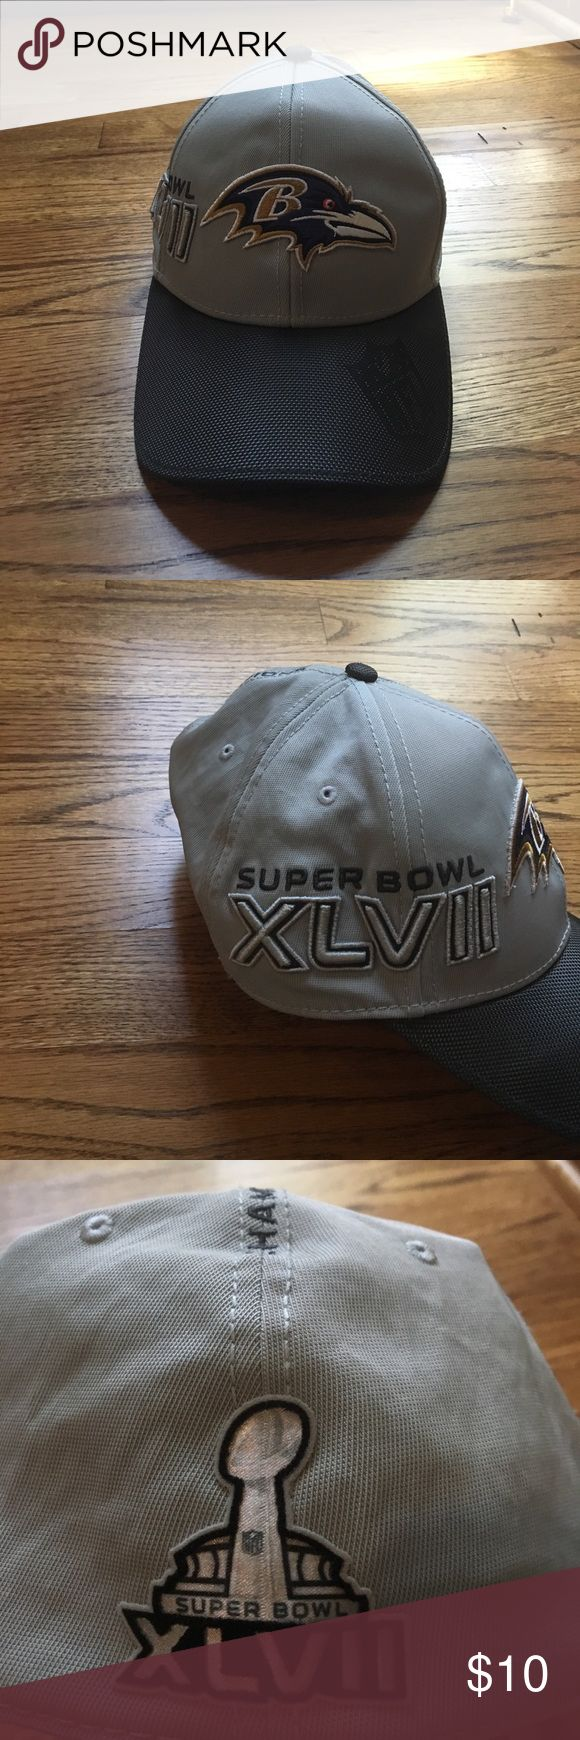 Baltimore Ravens Super Bowl XLVII Hat Excellent used condition, no visible flaws New Era Accessories Hats